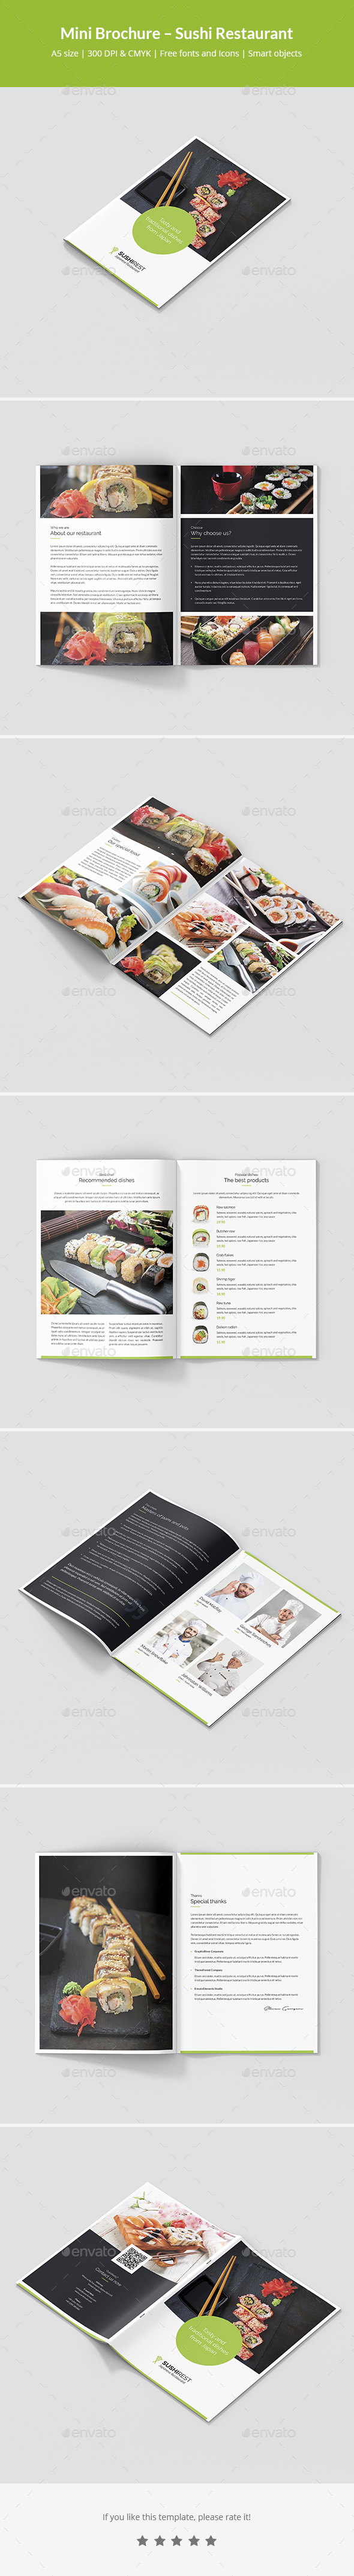 Mini Brochure – Sushi Restaurant A5 - Informational Brochures